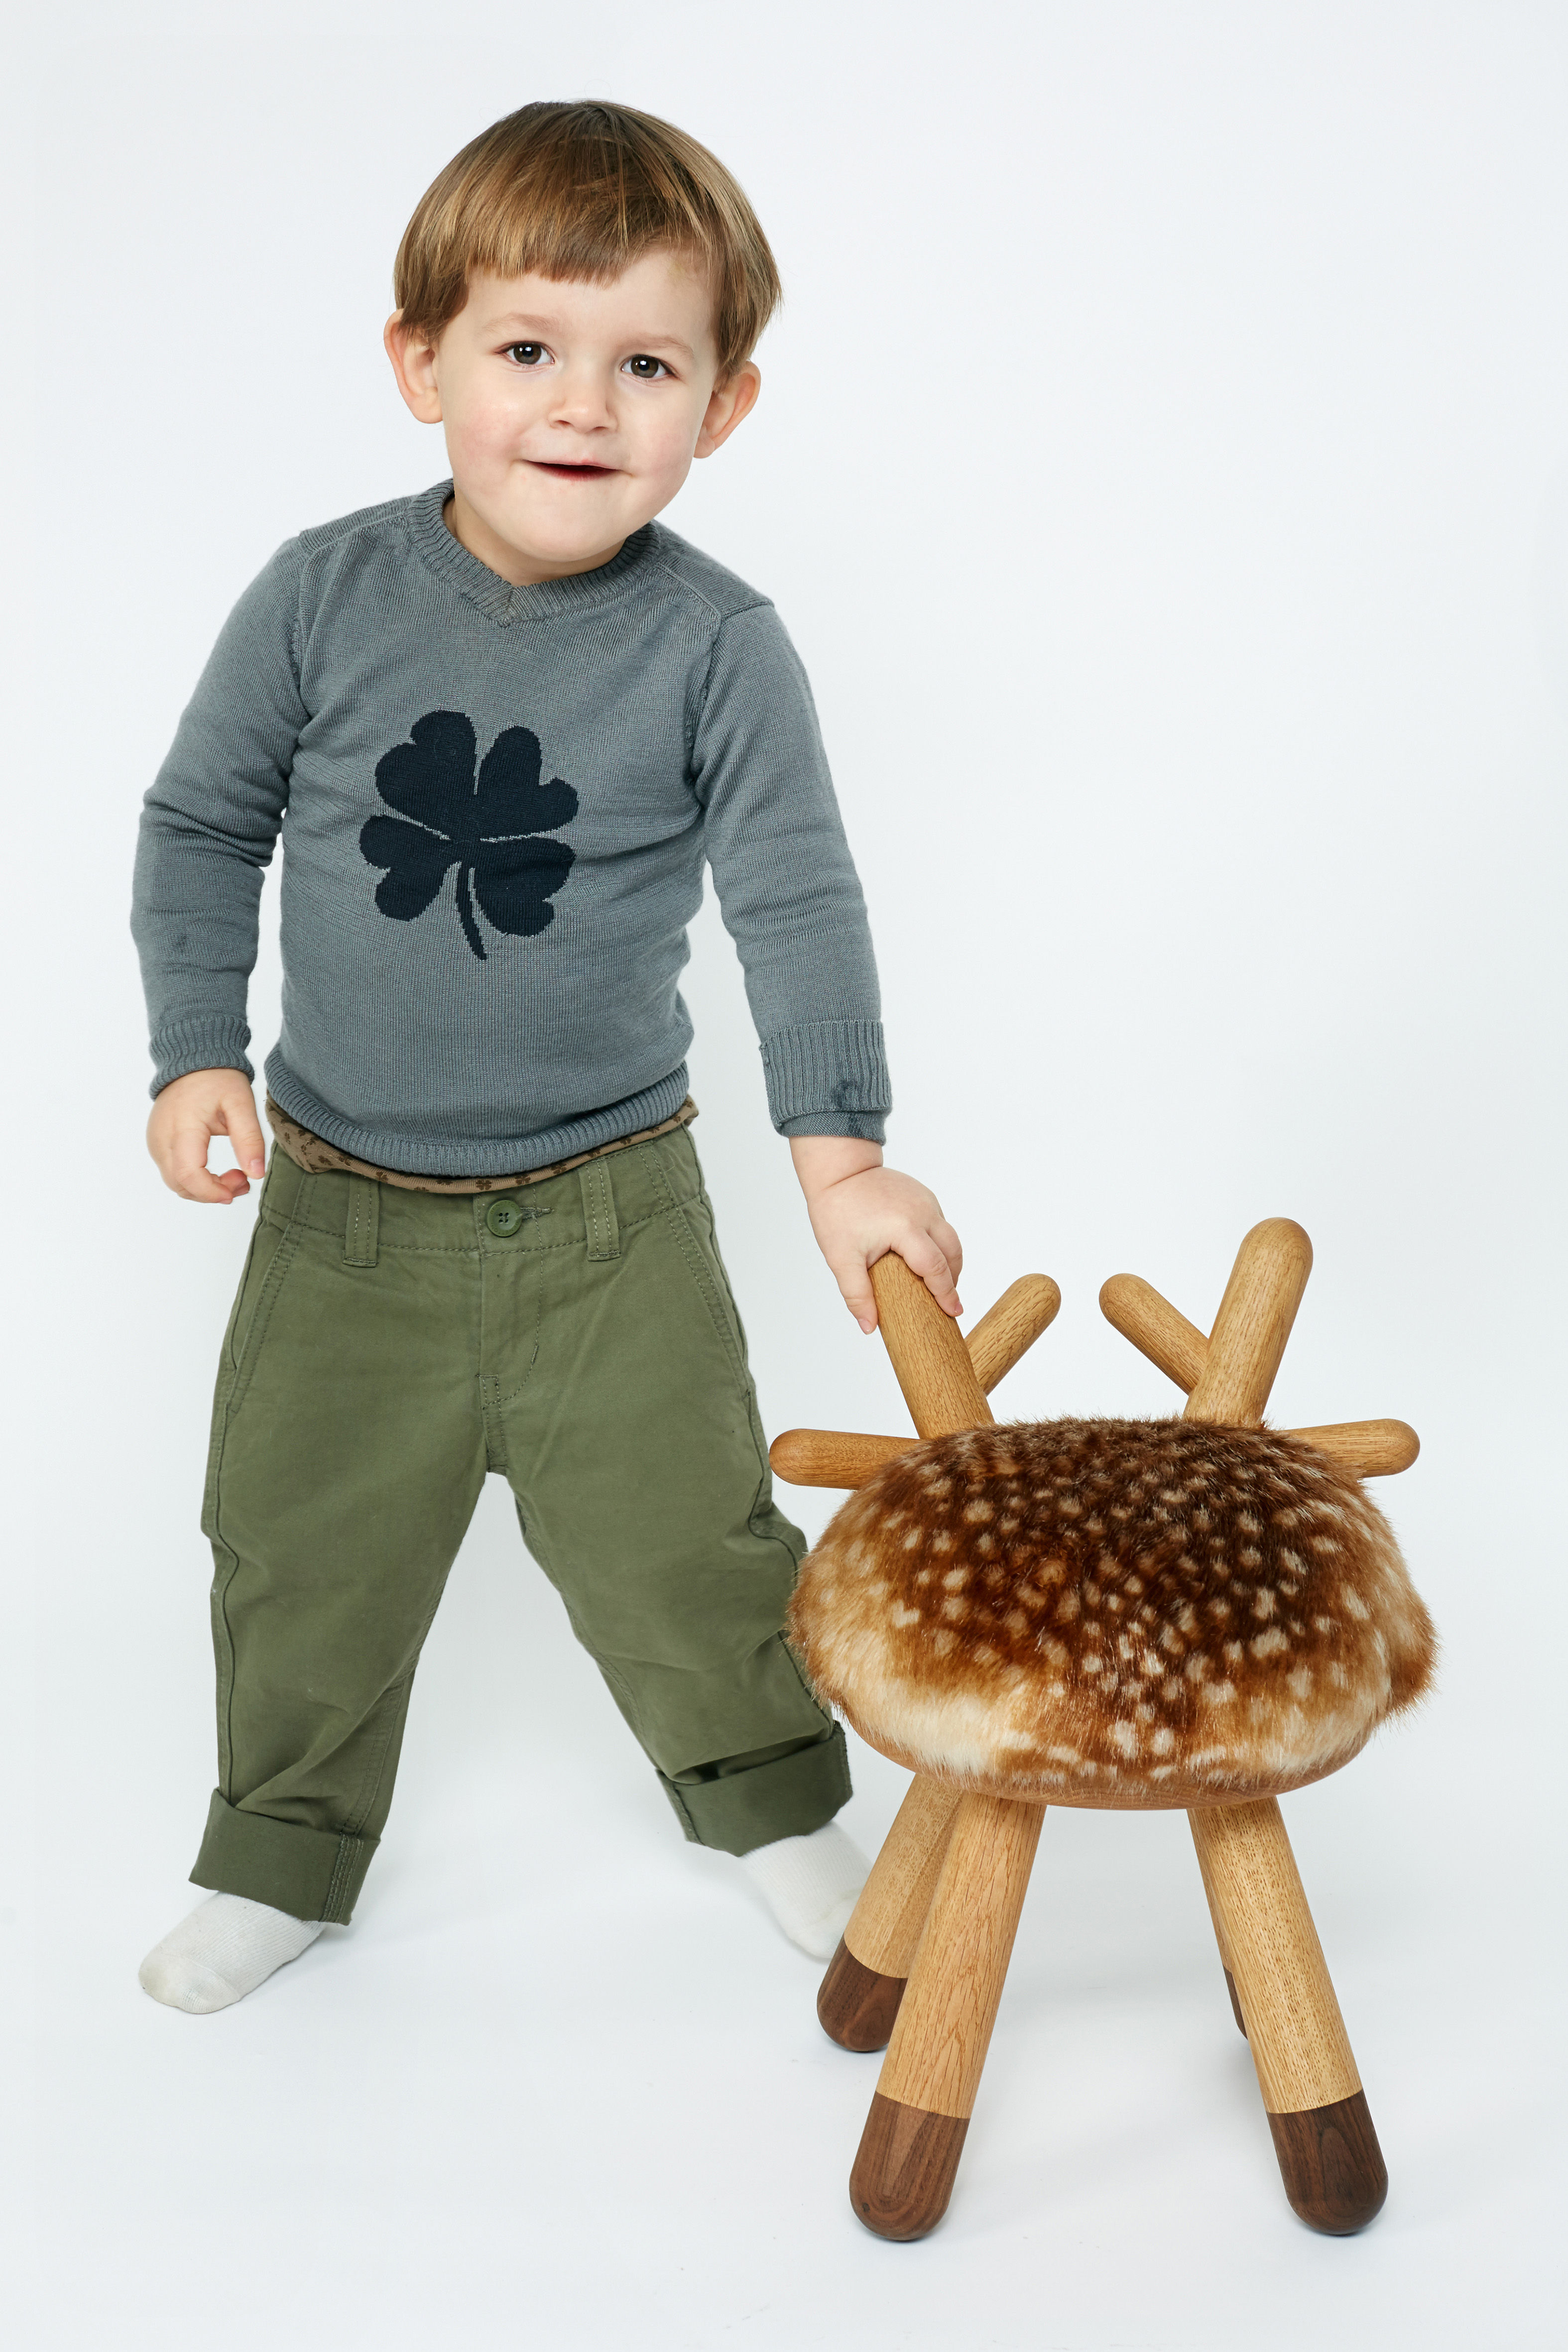 Bambi Childrenu0027s Chair   H 40 Cm Natural Wood / Beige U0026 Brown By Elements  Optimal